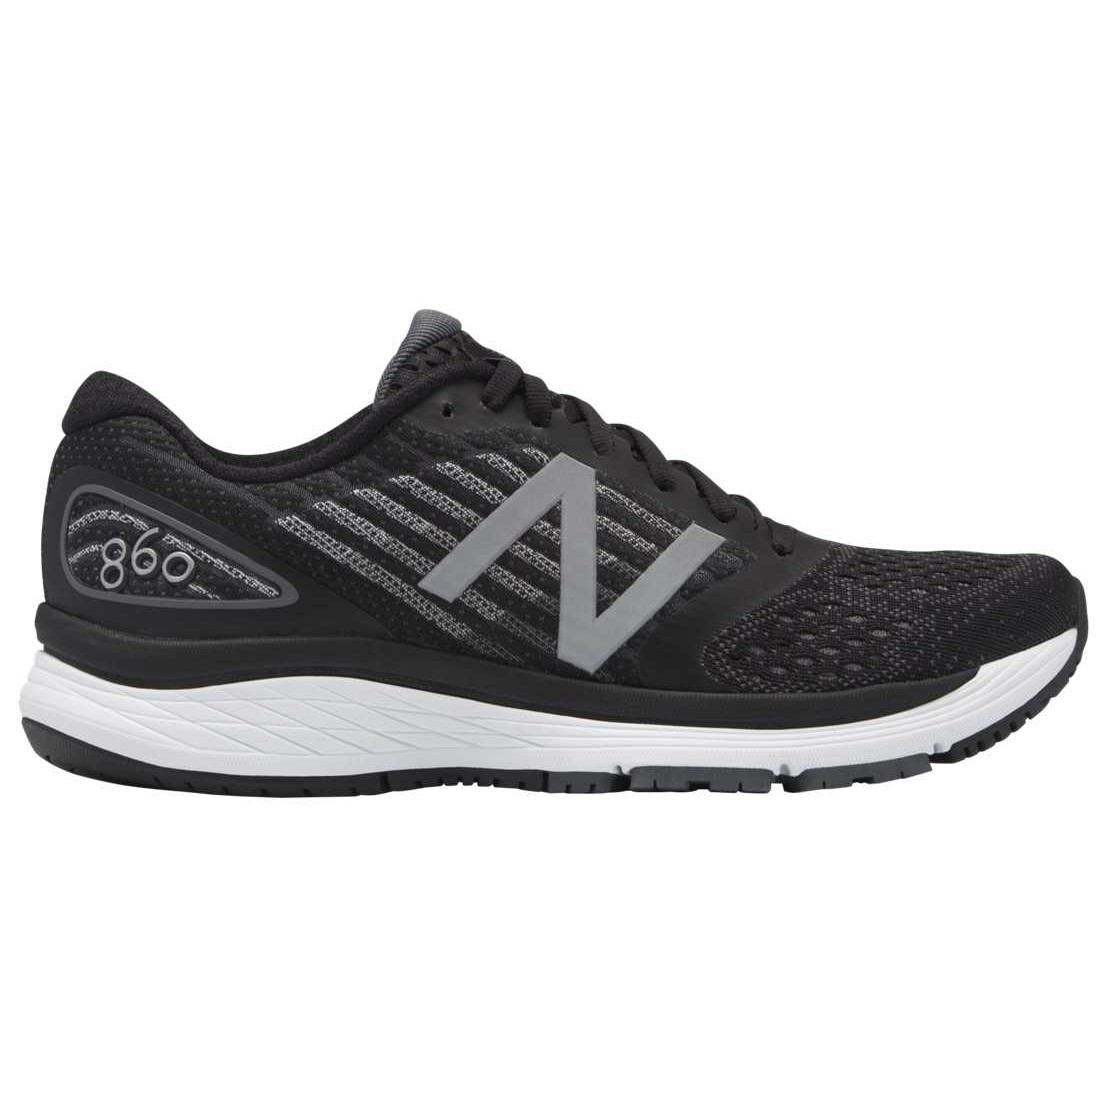 online store bd85e 420ff New Balance 860v9 - Womens Running Shoes - Black Dark Grey